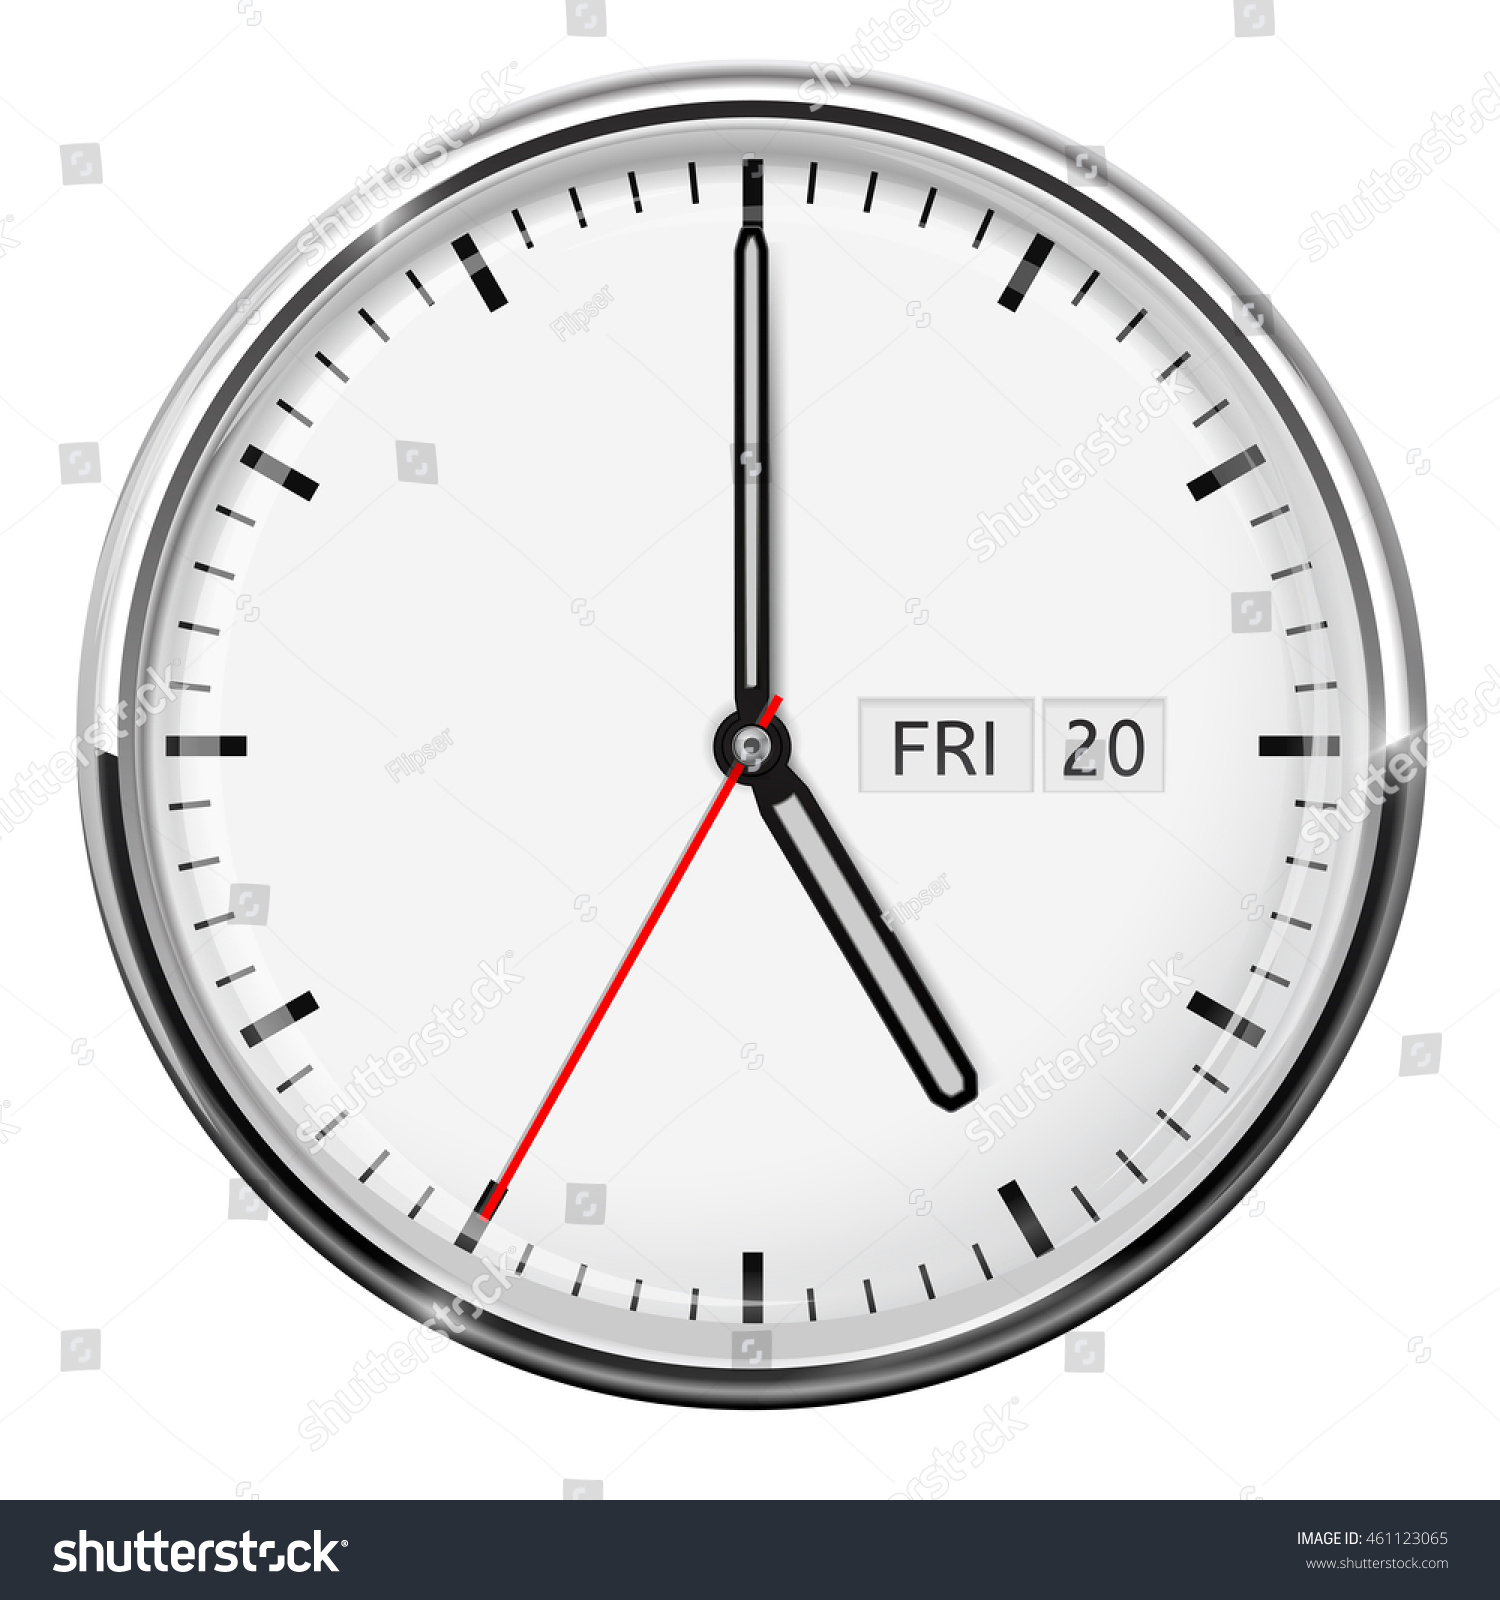 Oclock Full Version Clock Five Oclock Illustration